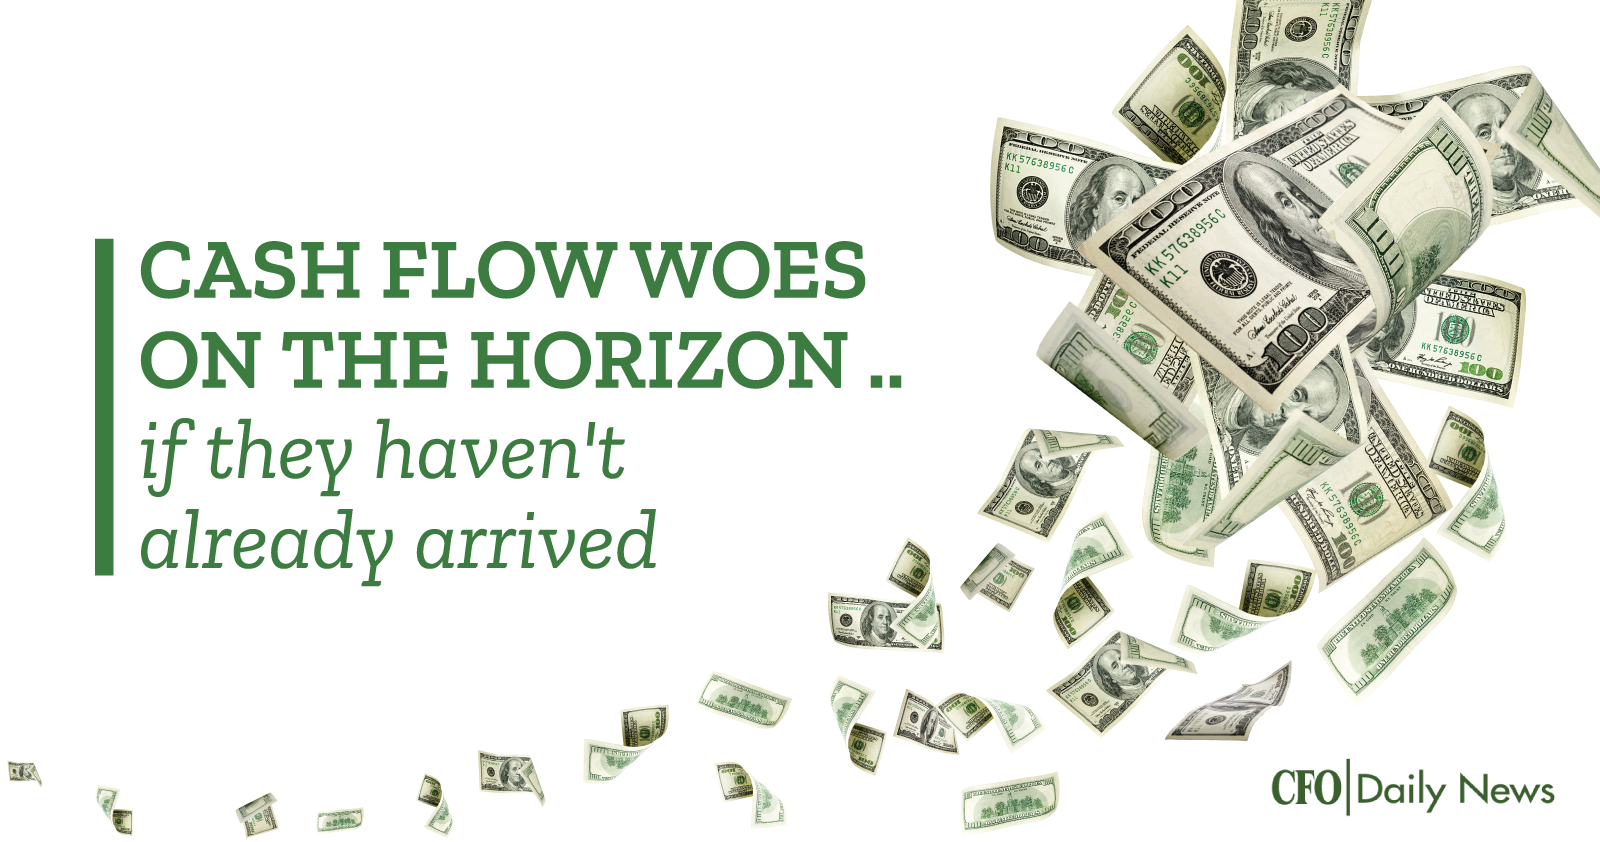 cash flow woes on the horizon if they have not already arrived